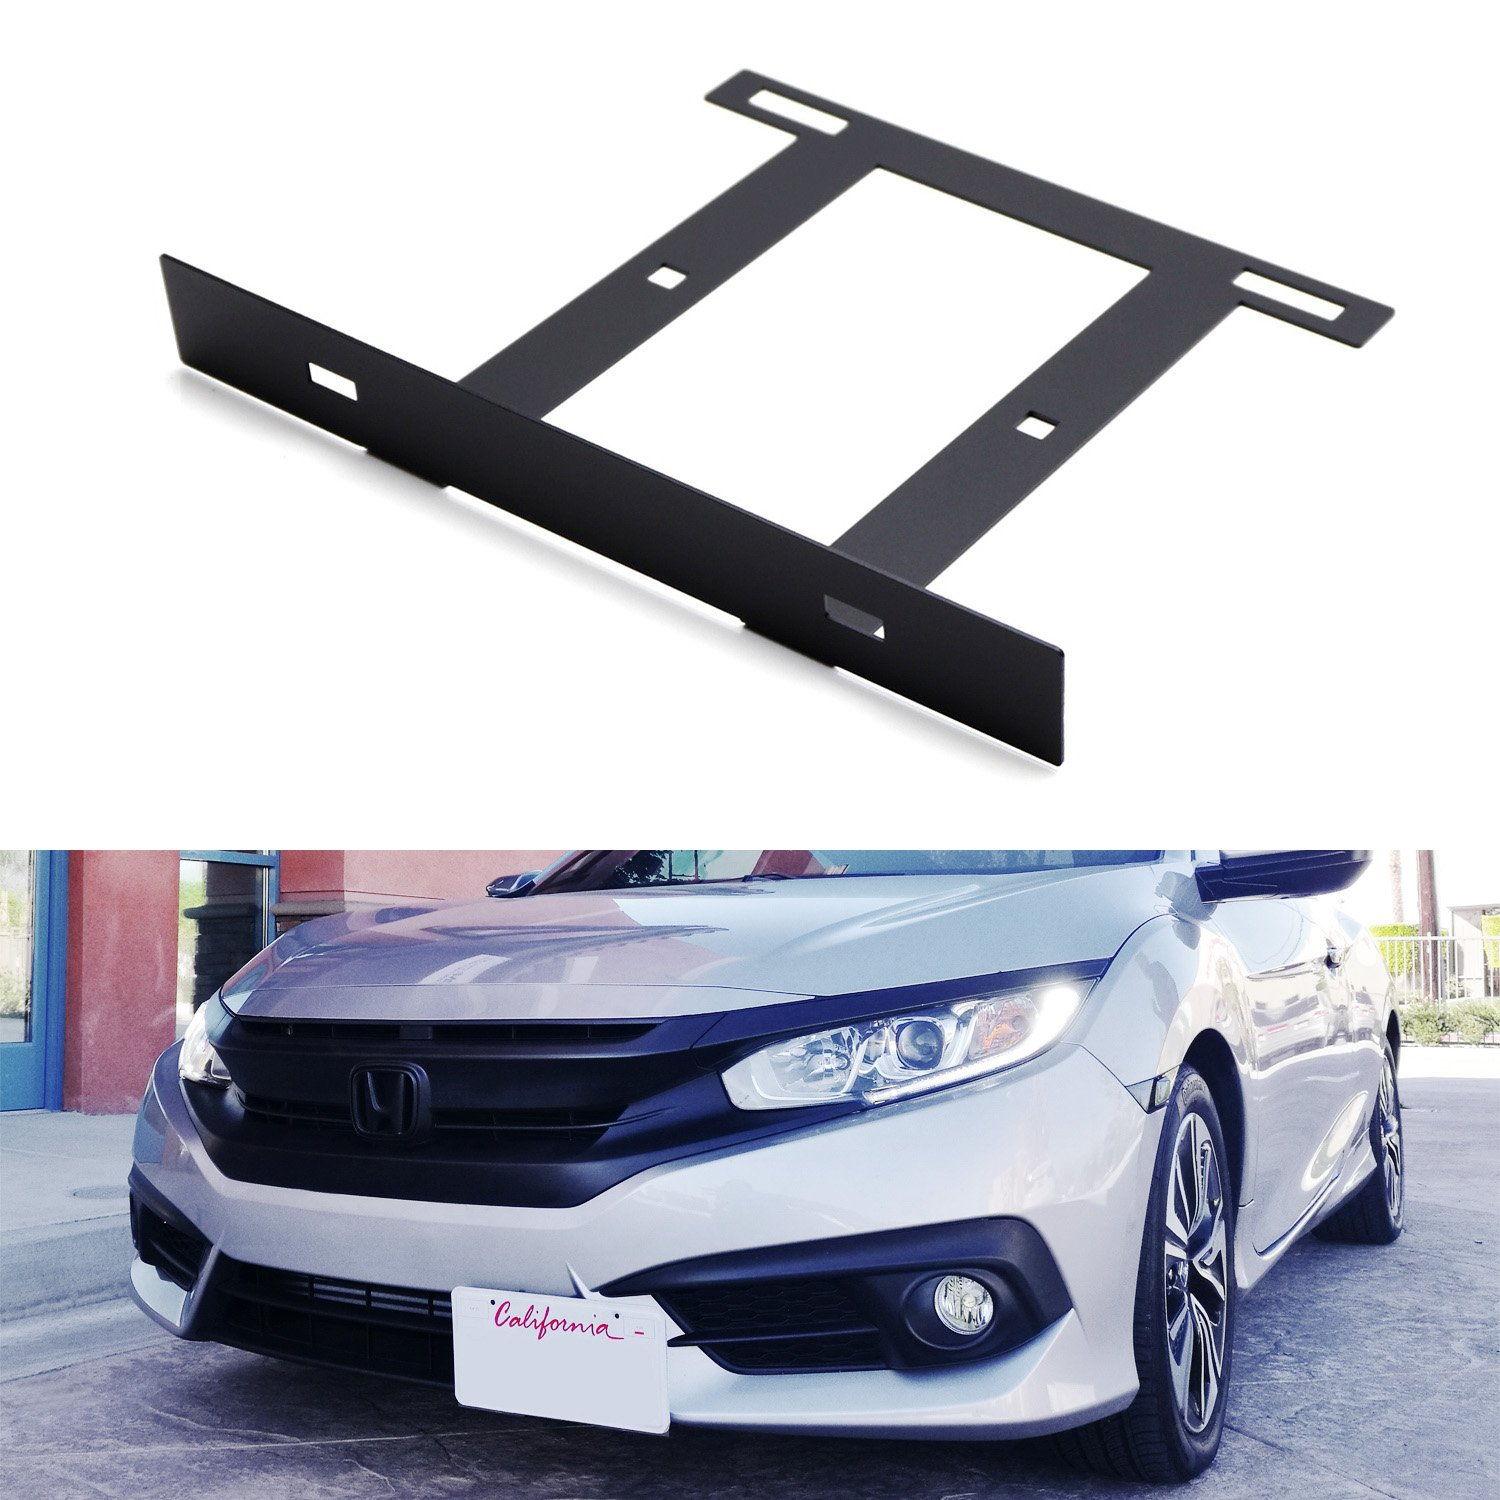 iJDMTOY Type-R Style Front Bumper License Plate Side Relocation Mounting Bracket For 2016-up 10th Gen Honda Civic Sedan/Coupe/Hatchback